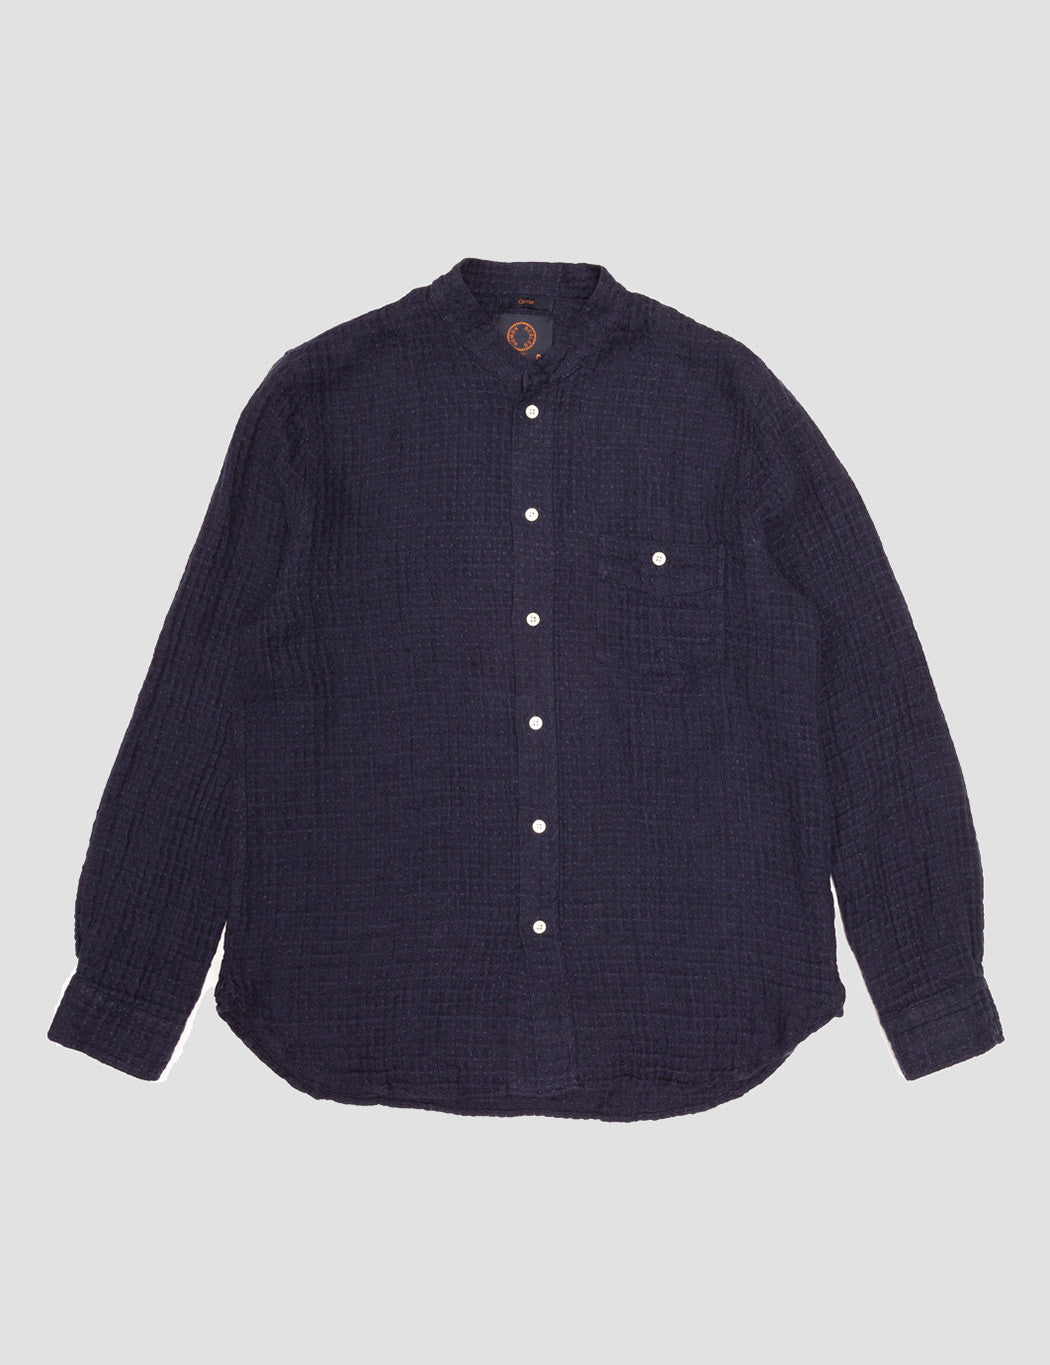 Human Scales Orvar Shirt - Navy Blue